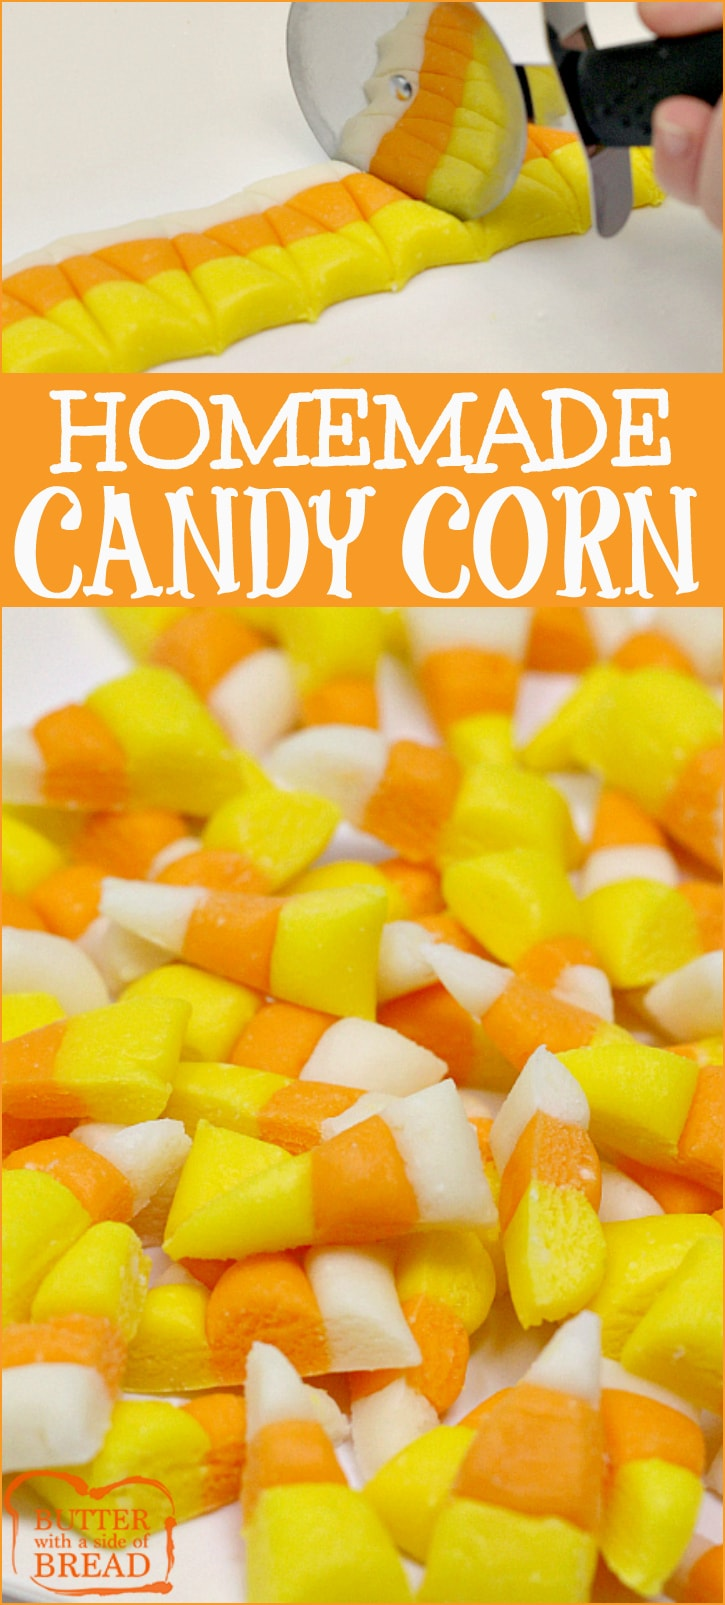 Homemade Candy Corn is easy to make and even more delicious than the store-bought version of this favorite Halloween treat!